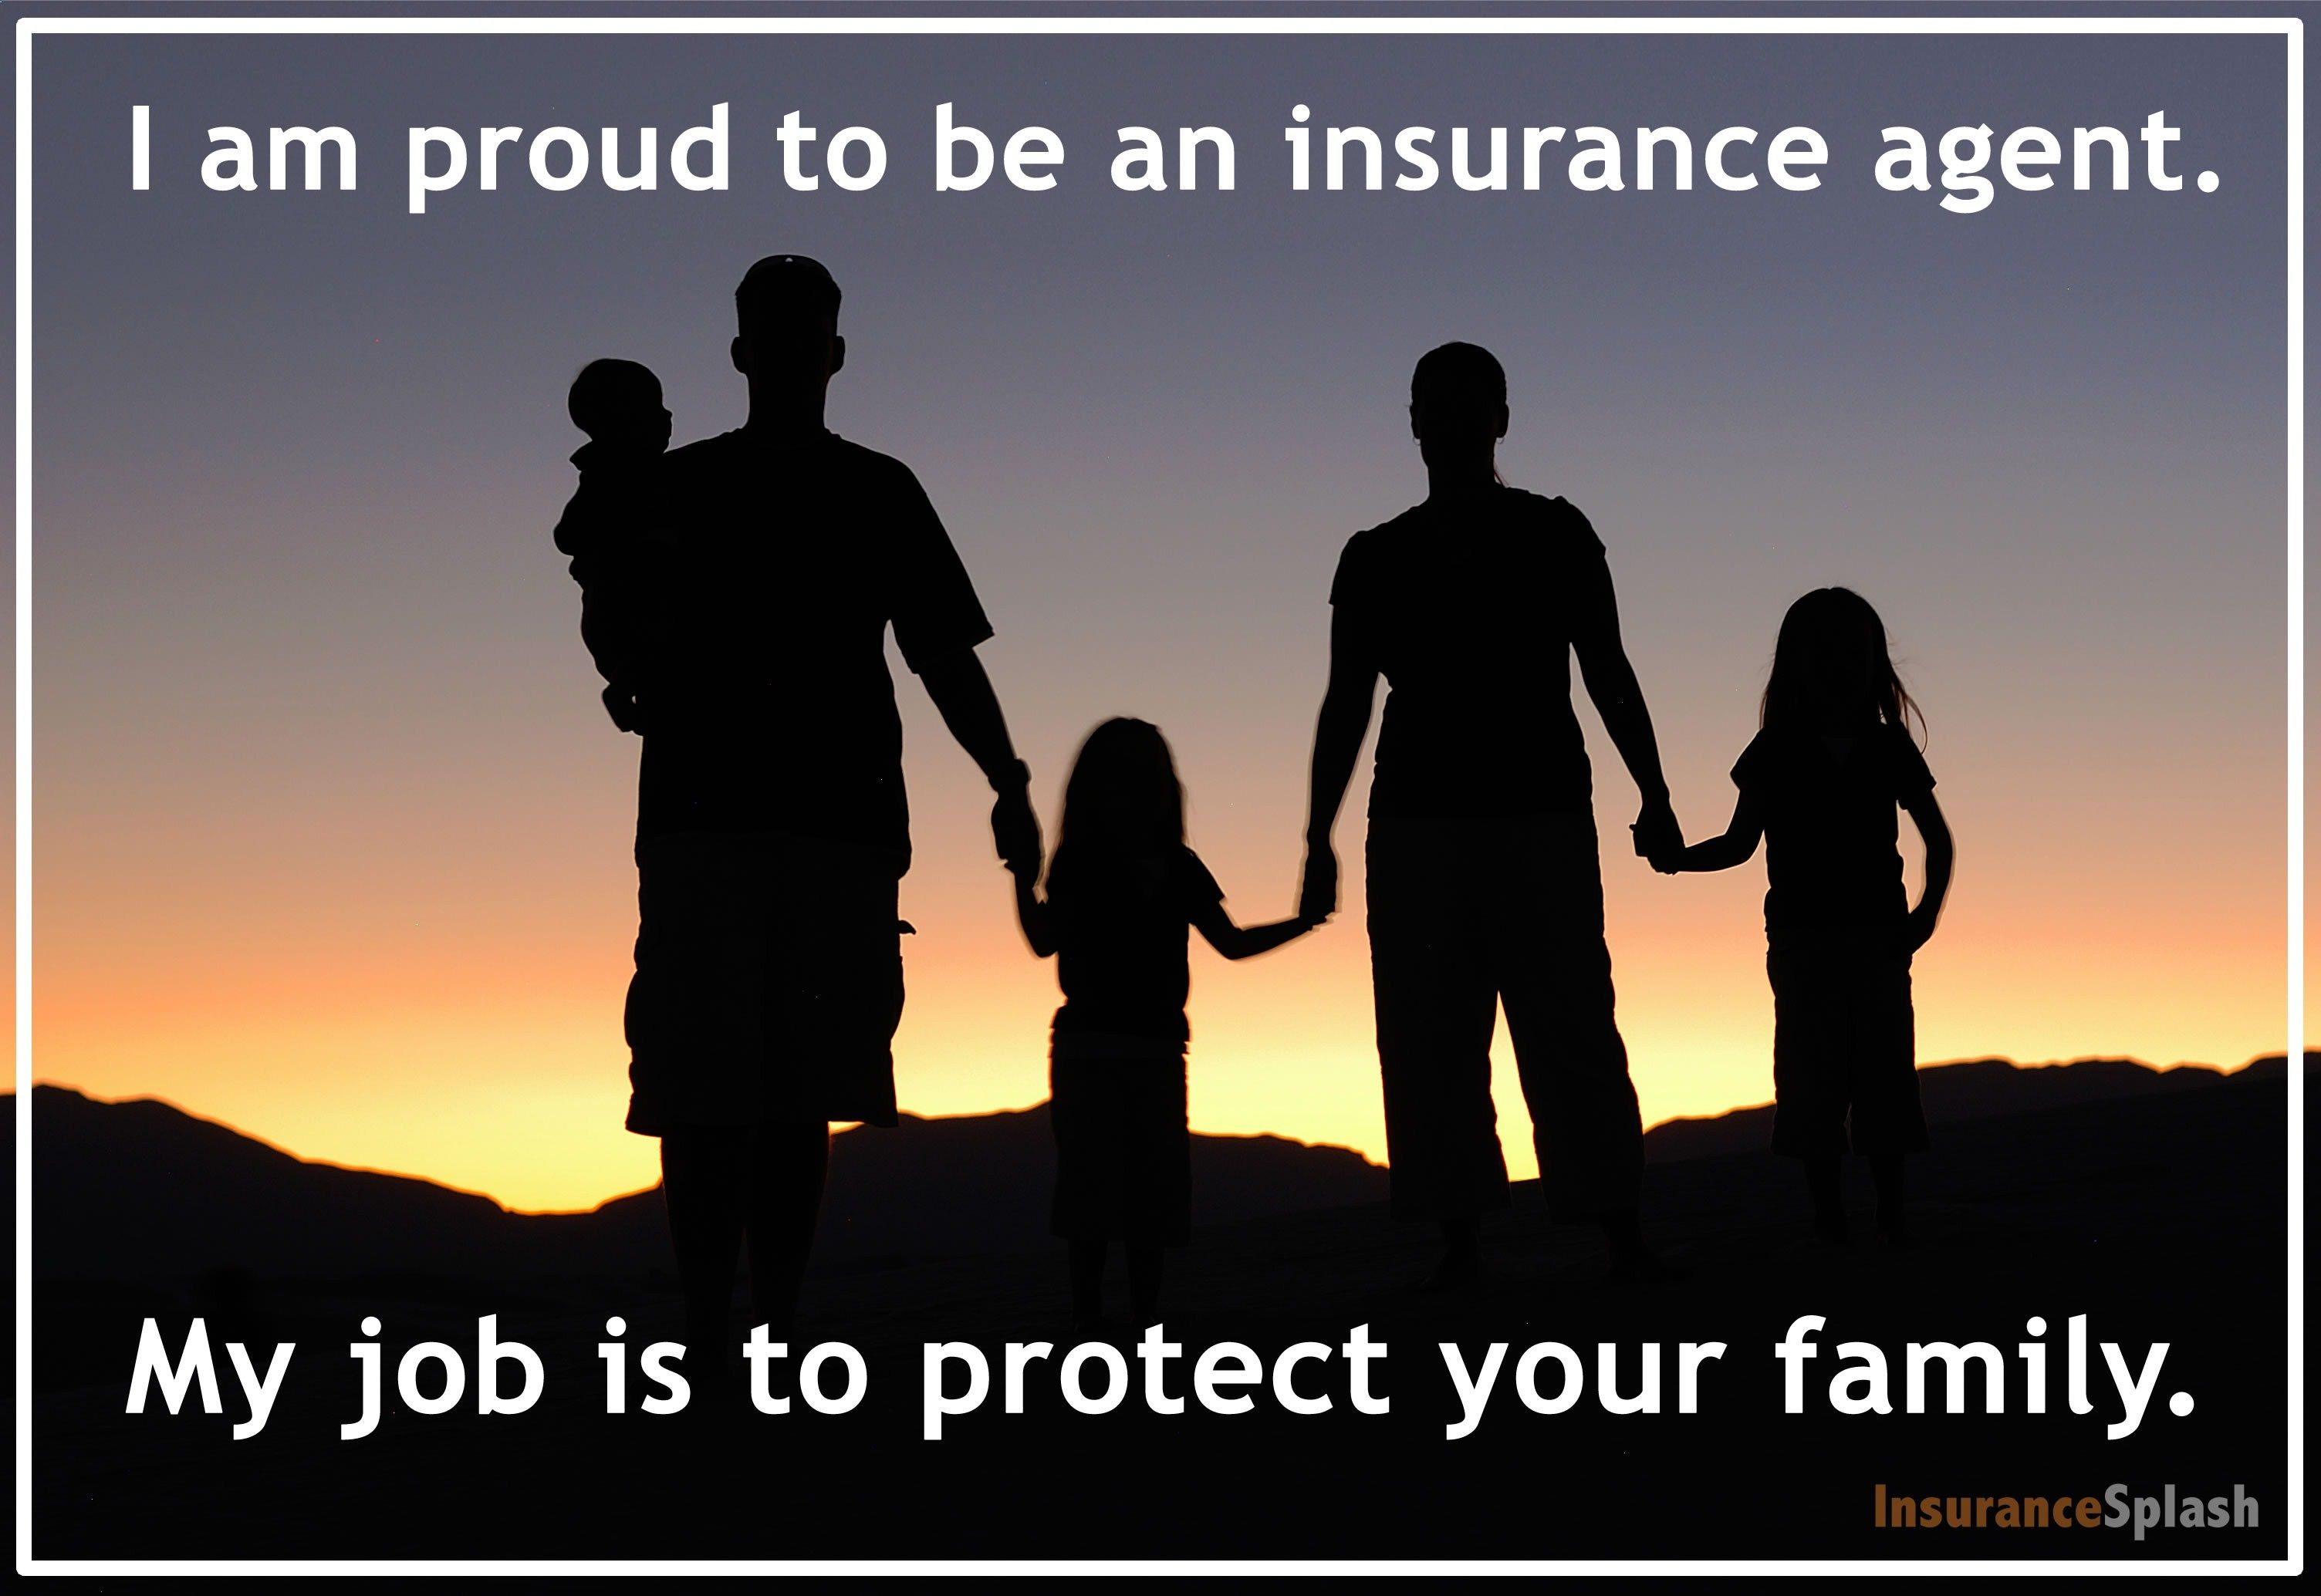 State Farm Life Insurance Quote Awesome An Insurance Agents Job Is To Protect Your Familythats Something